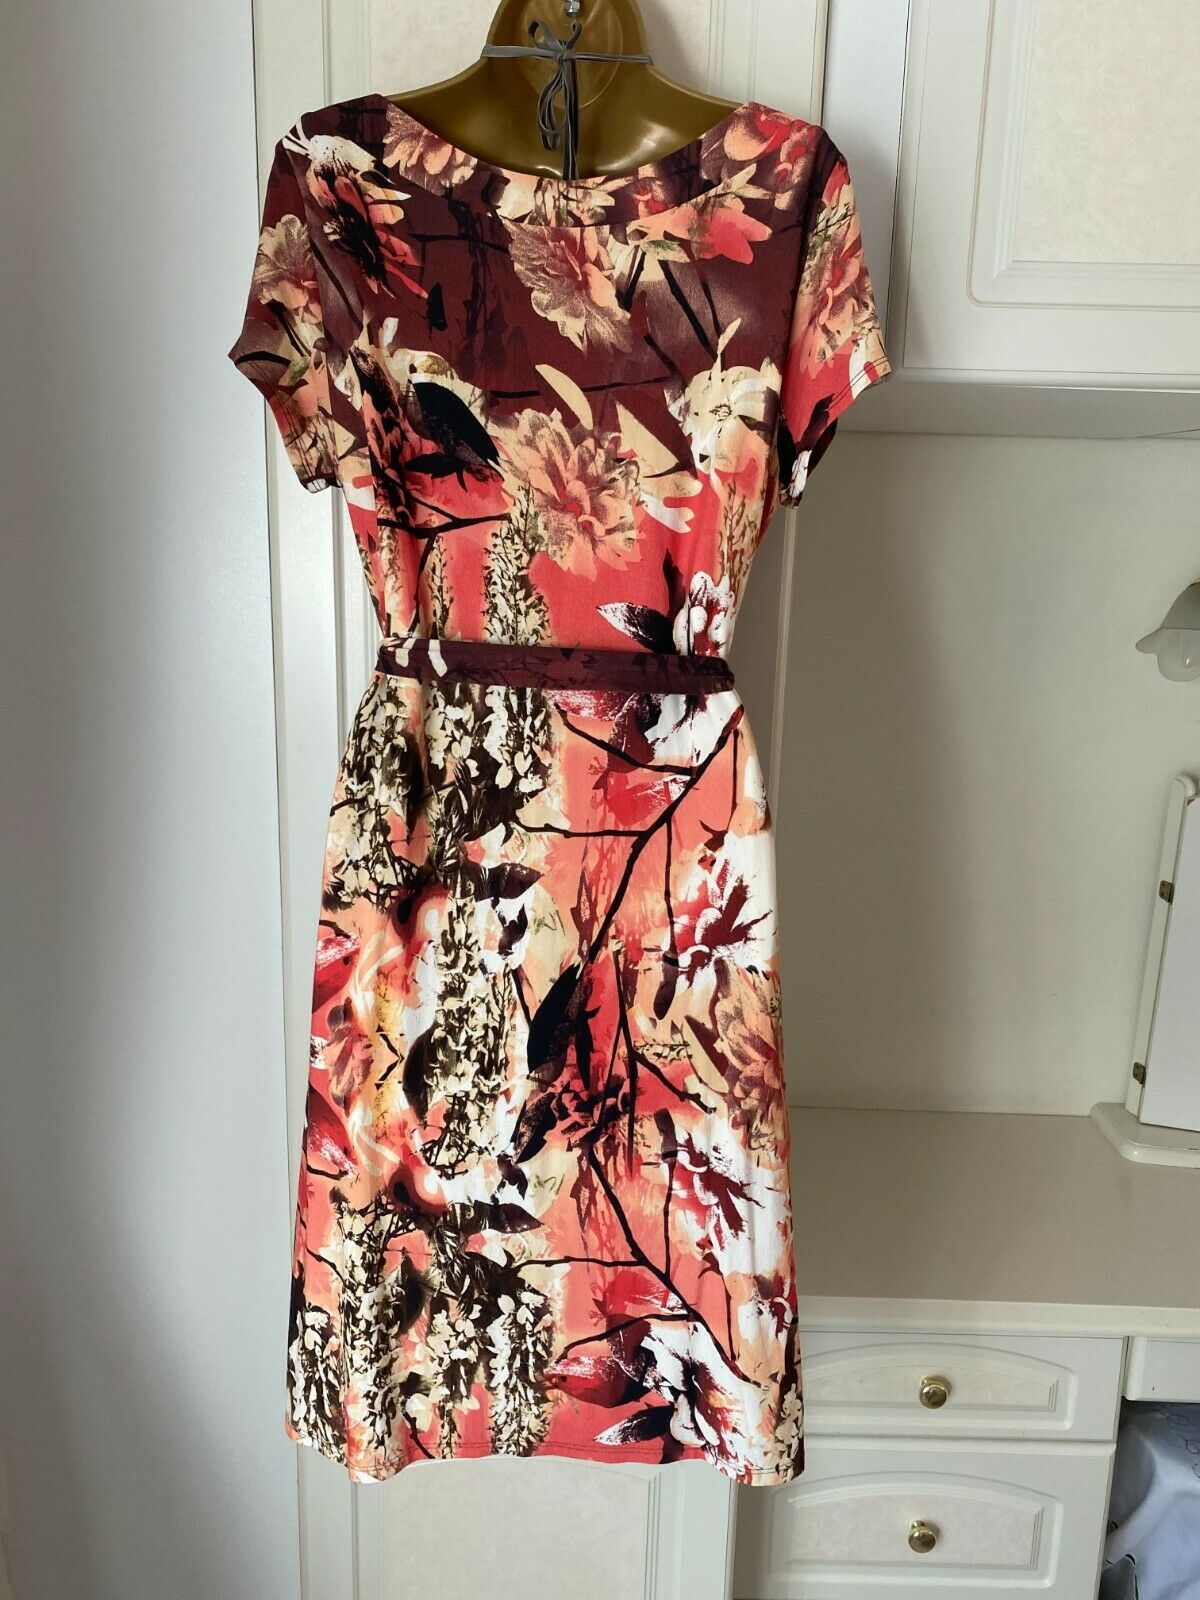 Laura Ashley Size Uk 16 Nwt Of Vibrant Floral Print Lined Dress Bust 40